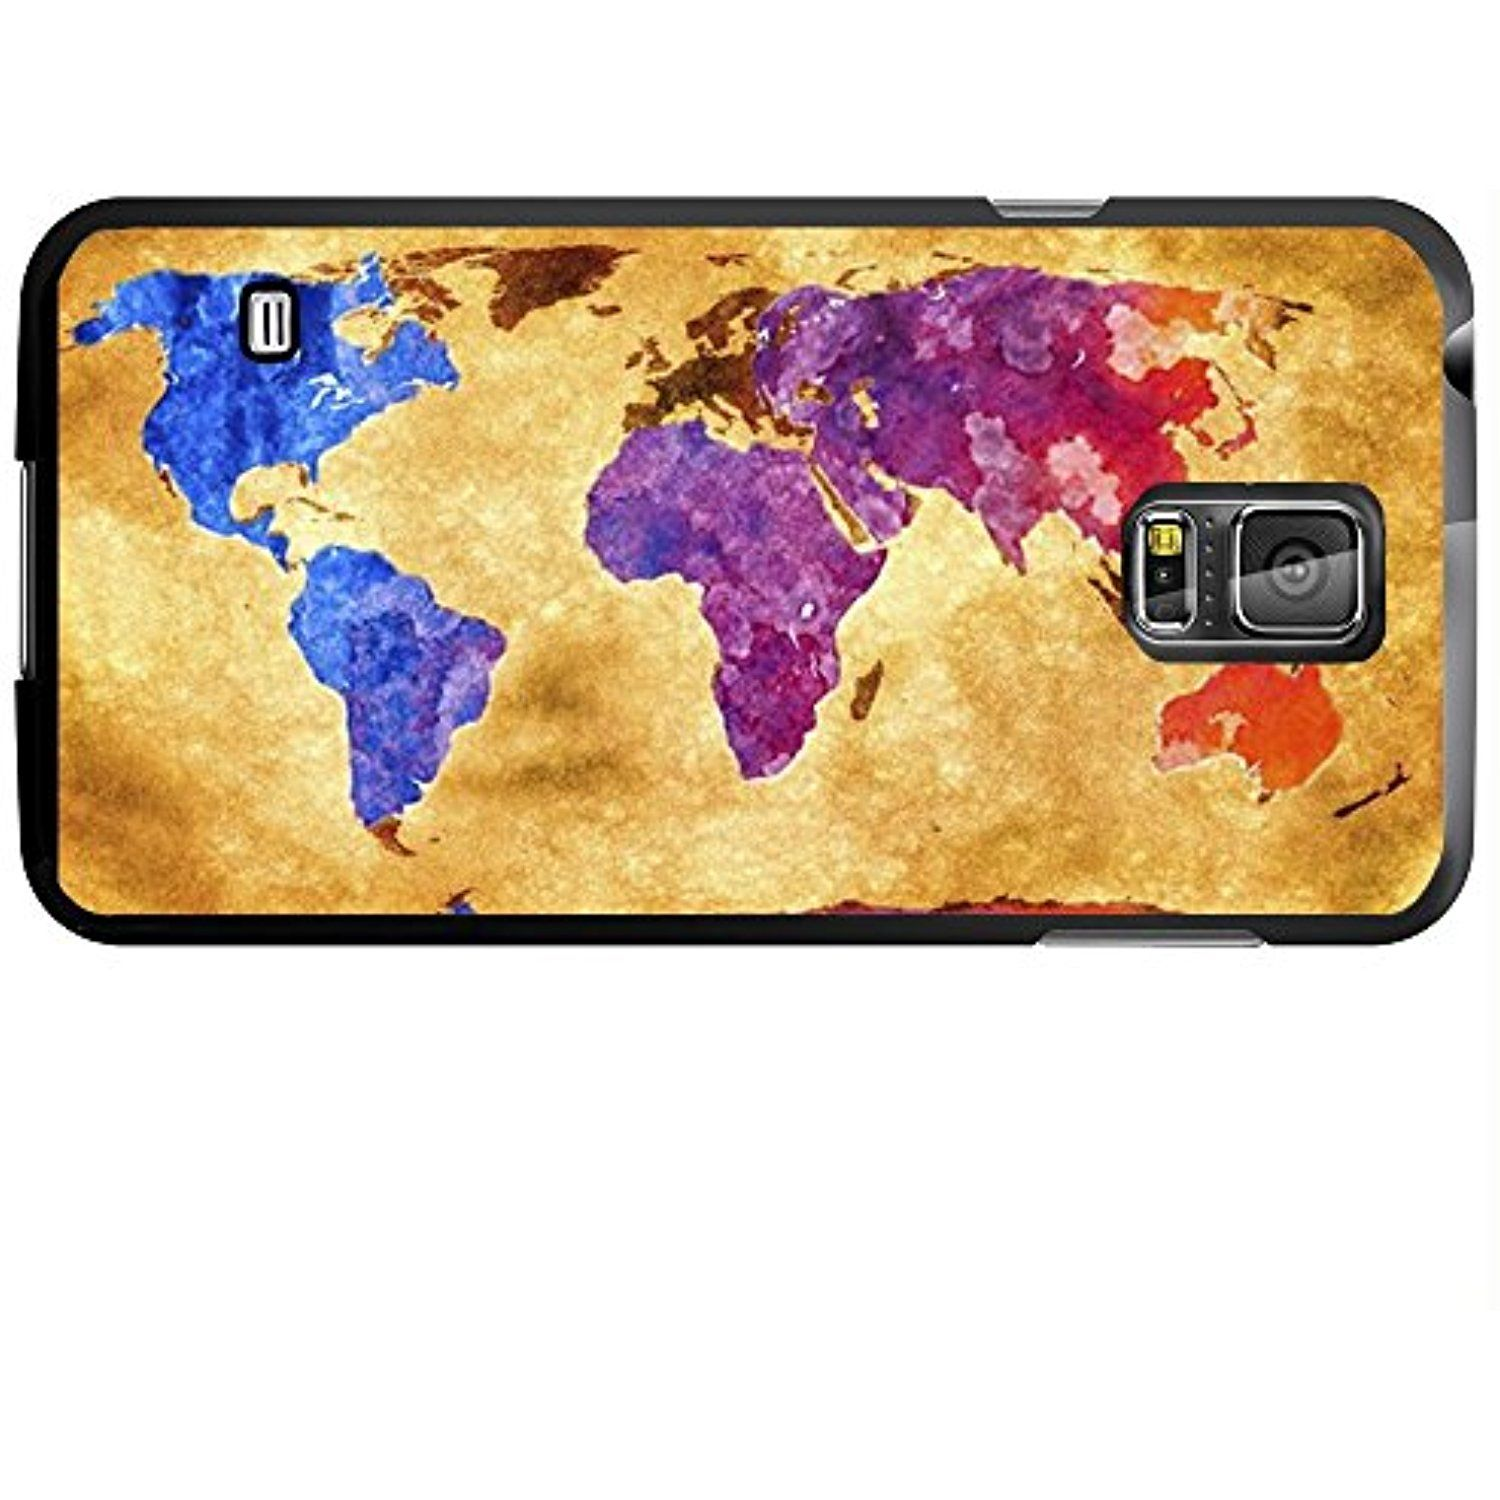 Antique World Map with Colorful Countries Hard Snap on Phone Case Galaxy s5 V